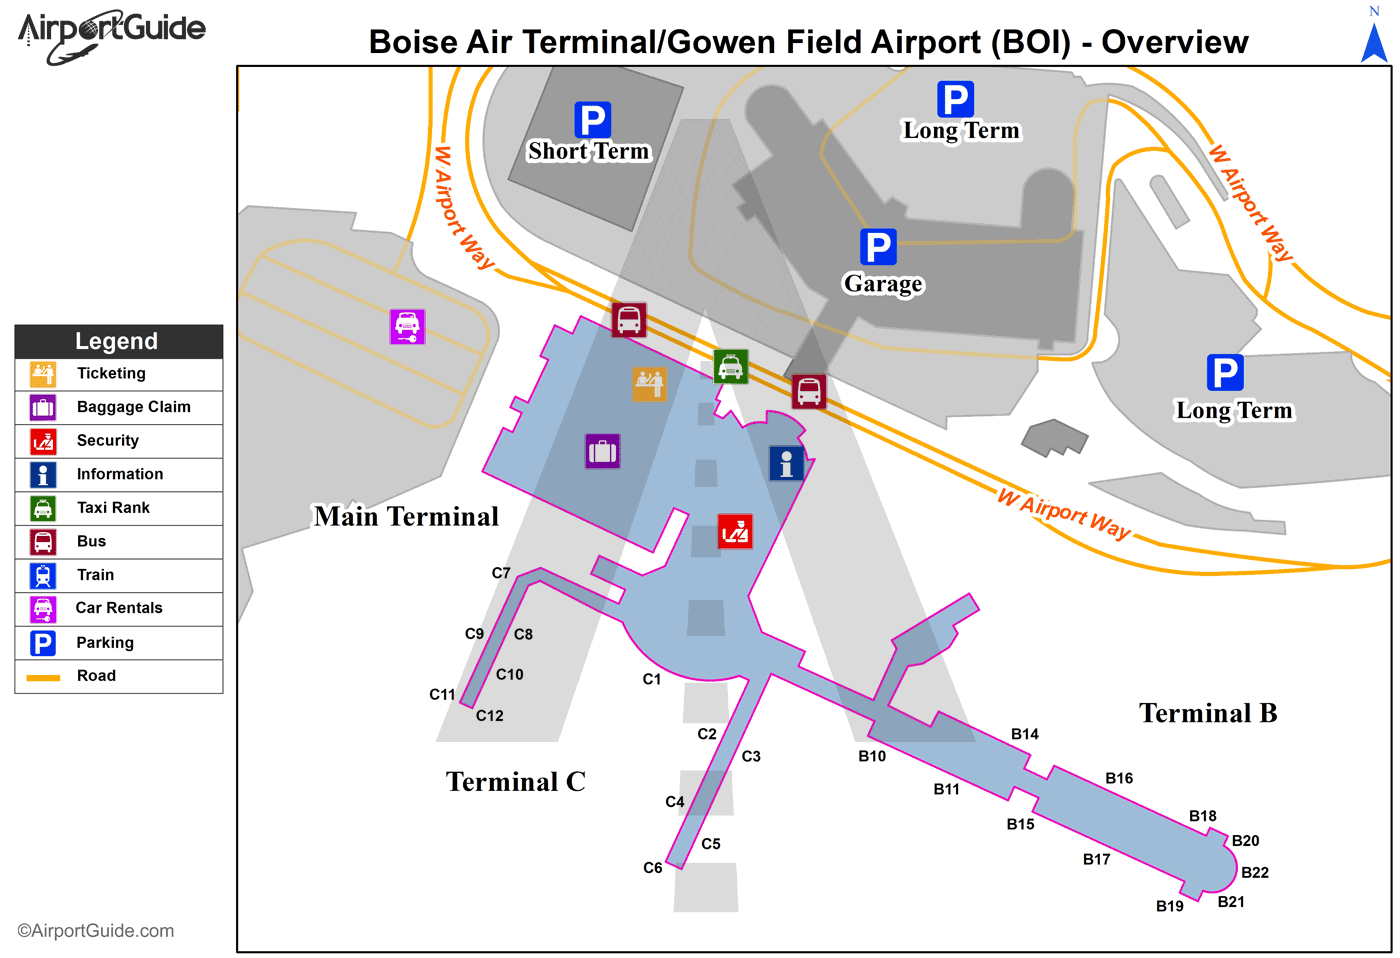 Boise - Boise Air Terminal/Gowen Field (BOI) Airport Terminal Map - Overview